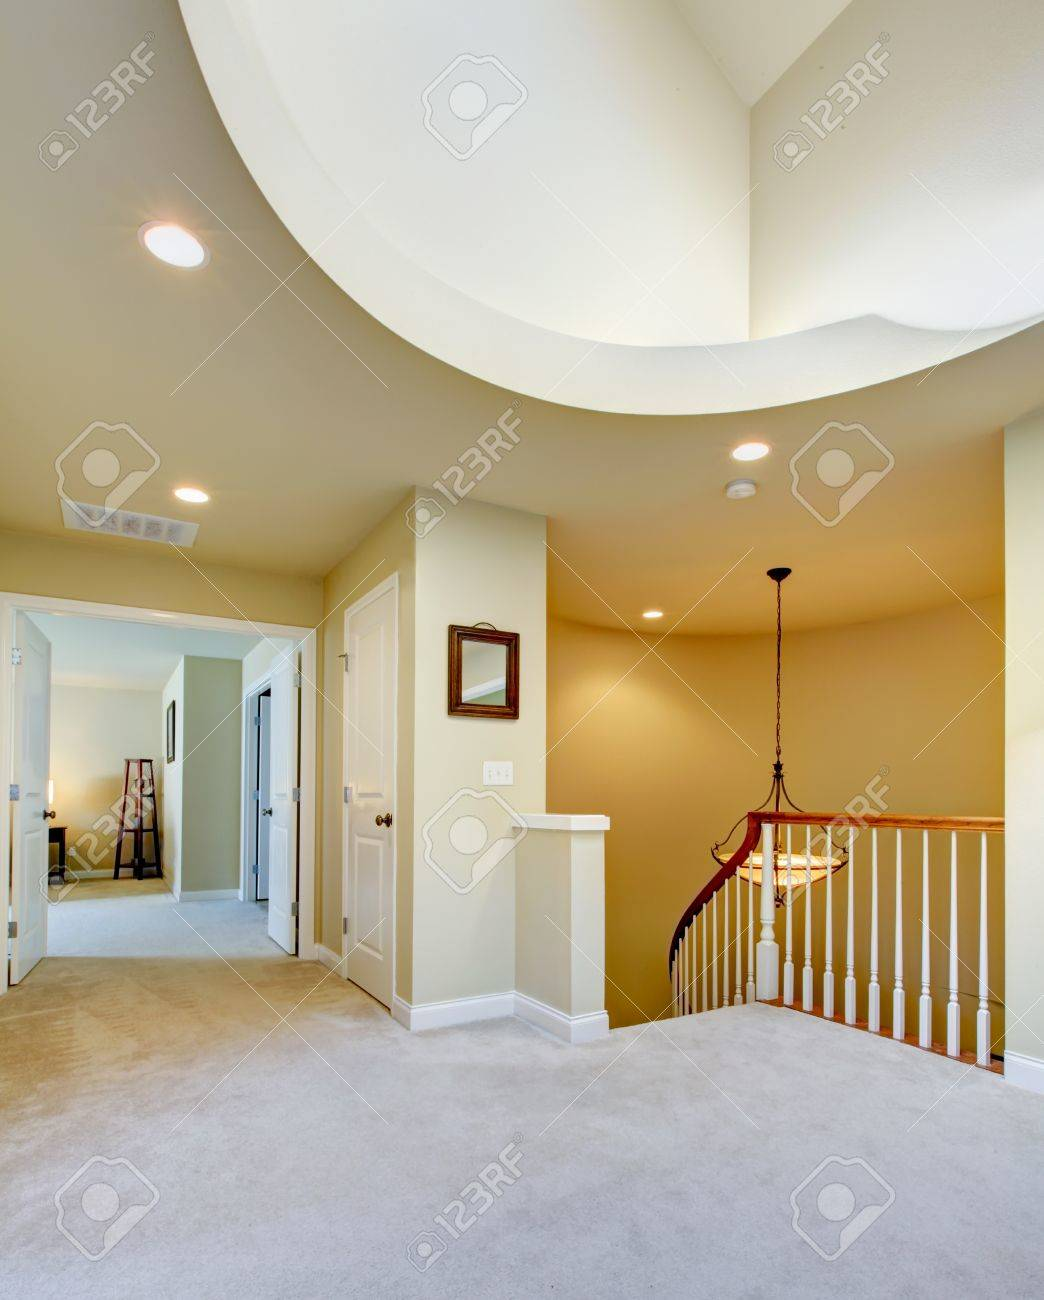 Home hallway interior with luxury  high round ceiling. Stock Photo - 17749660